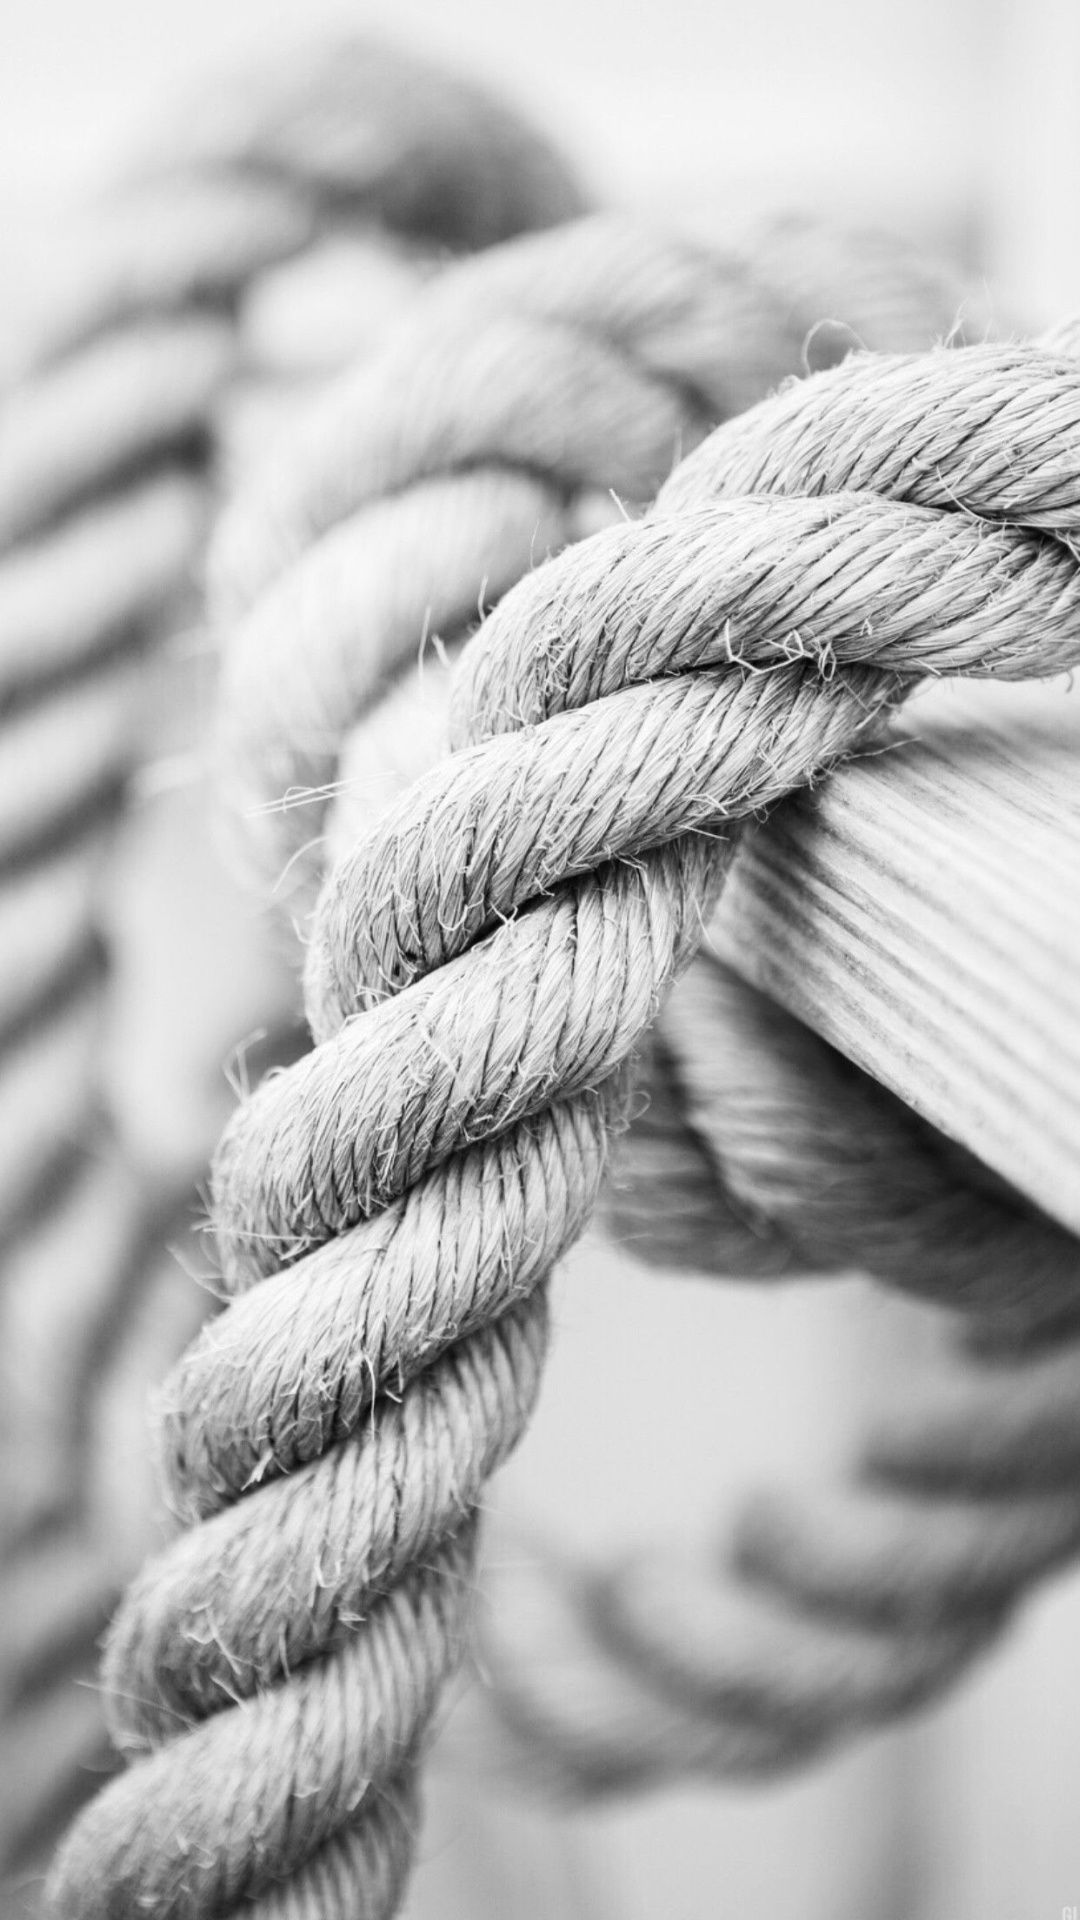 White Marine Knot Rope Iphone 6 Plus Hd Wallpaper Planner